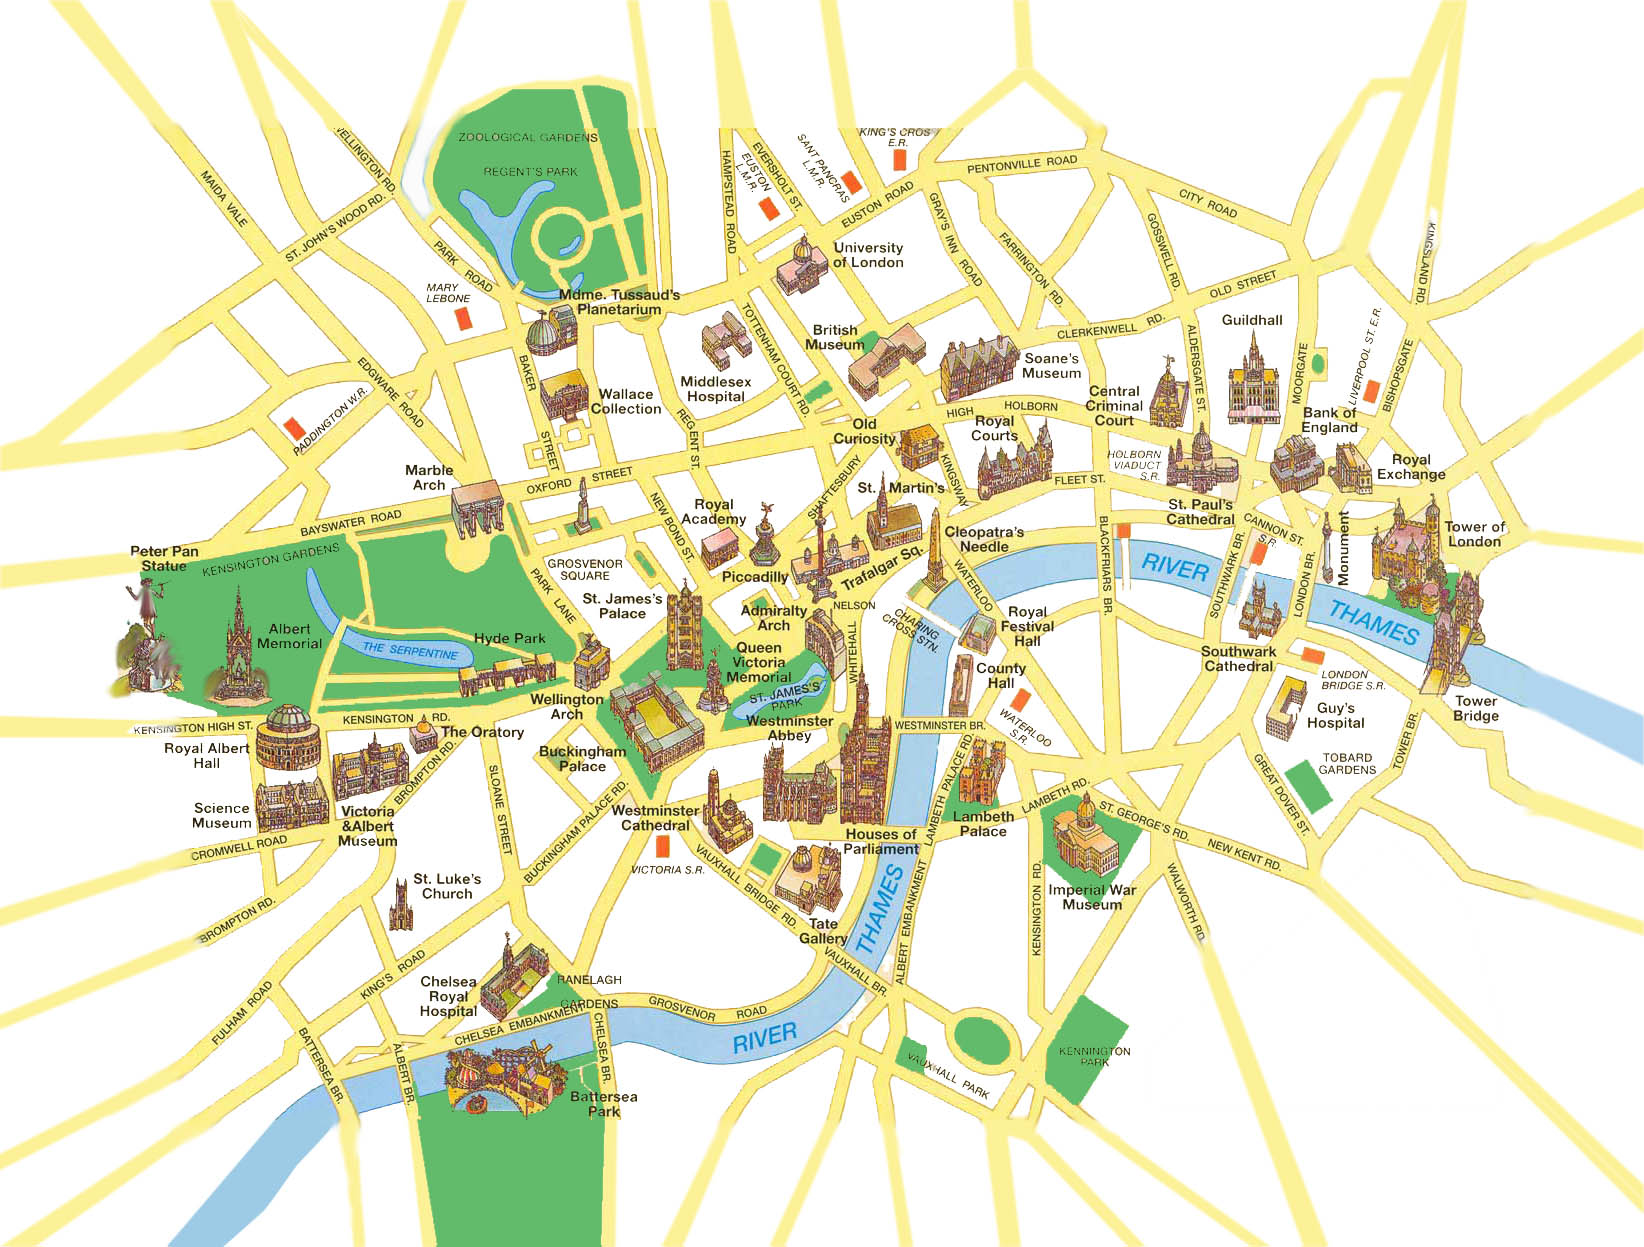 famous tour london spot area map